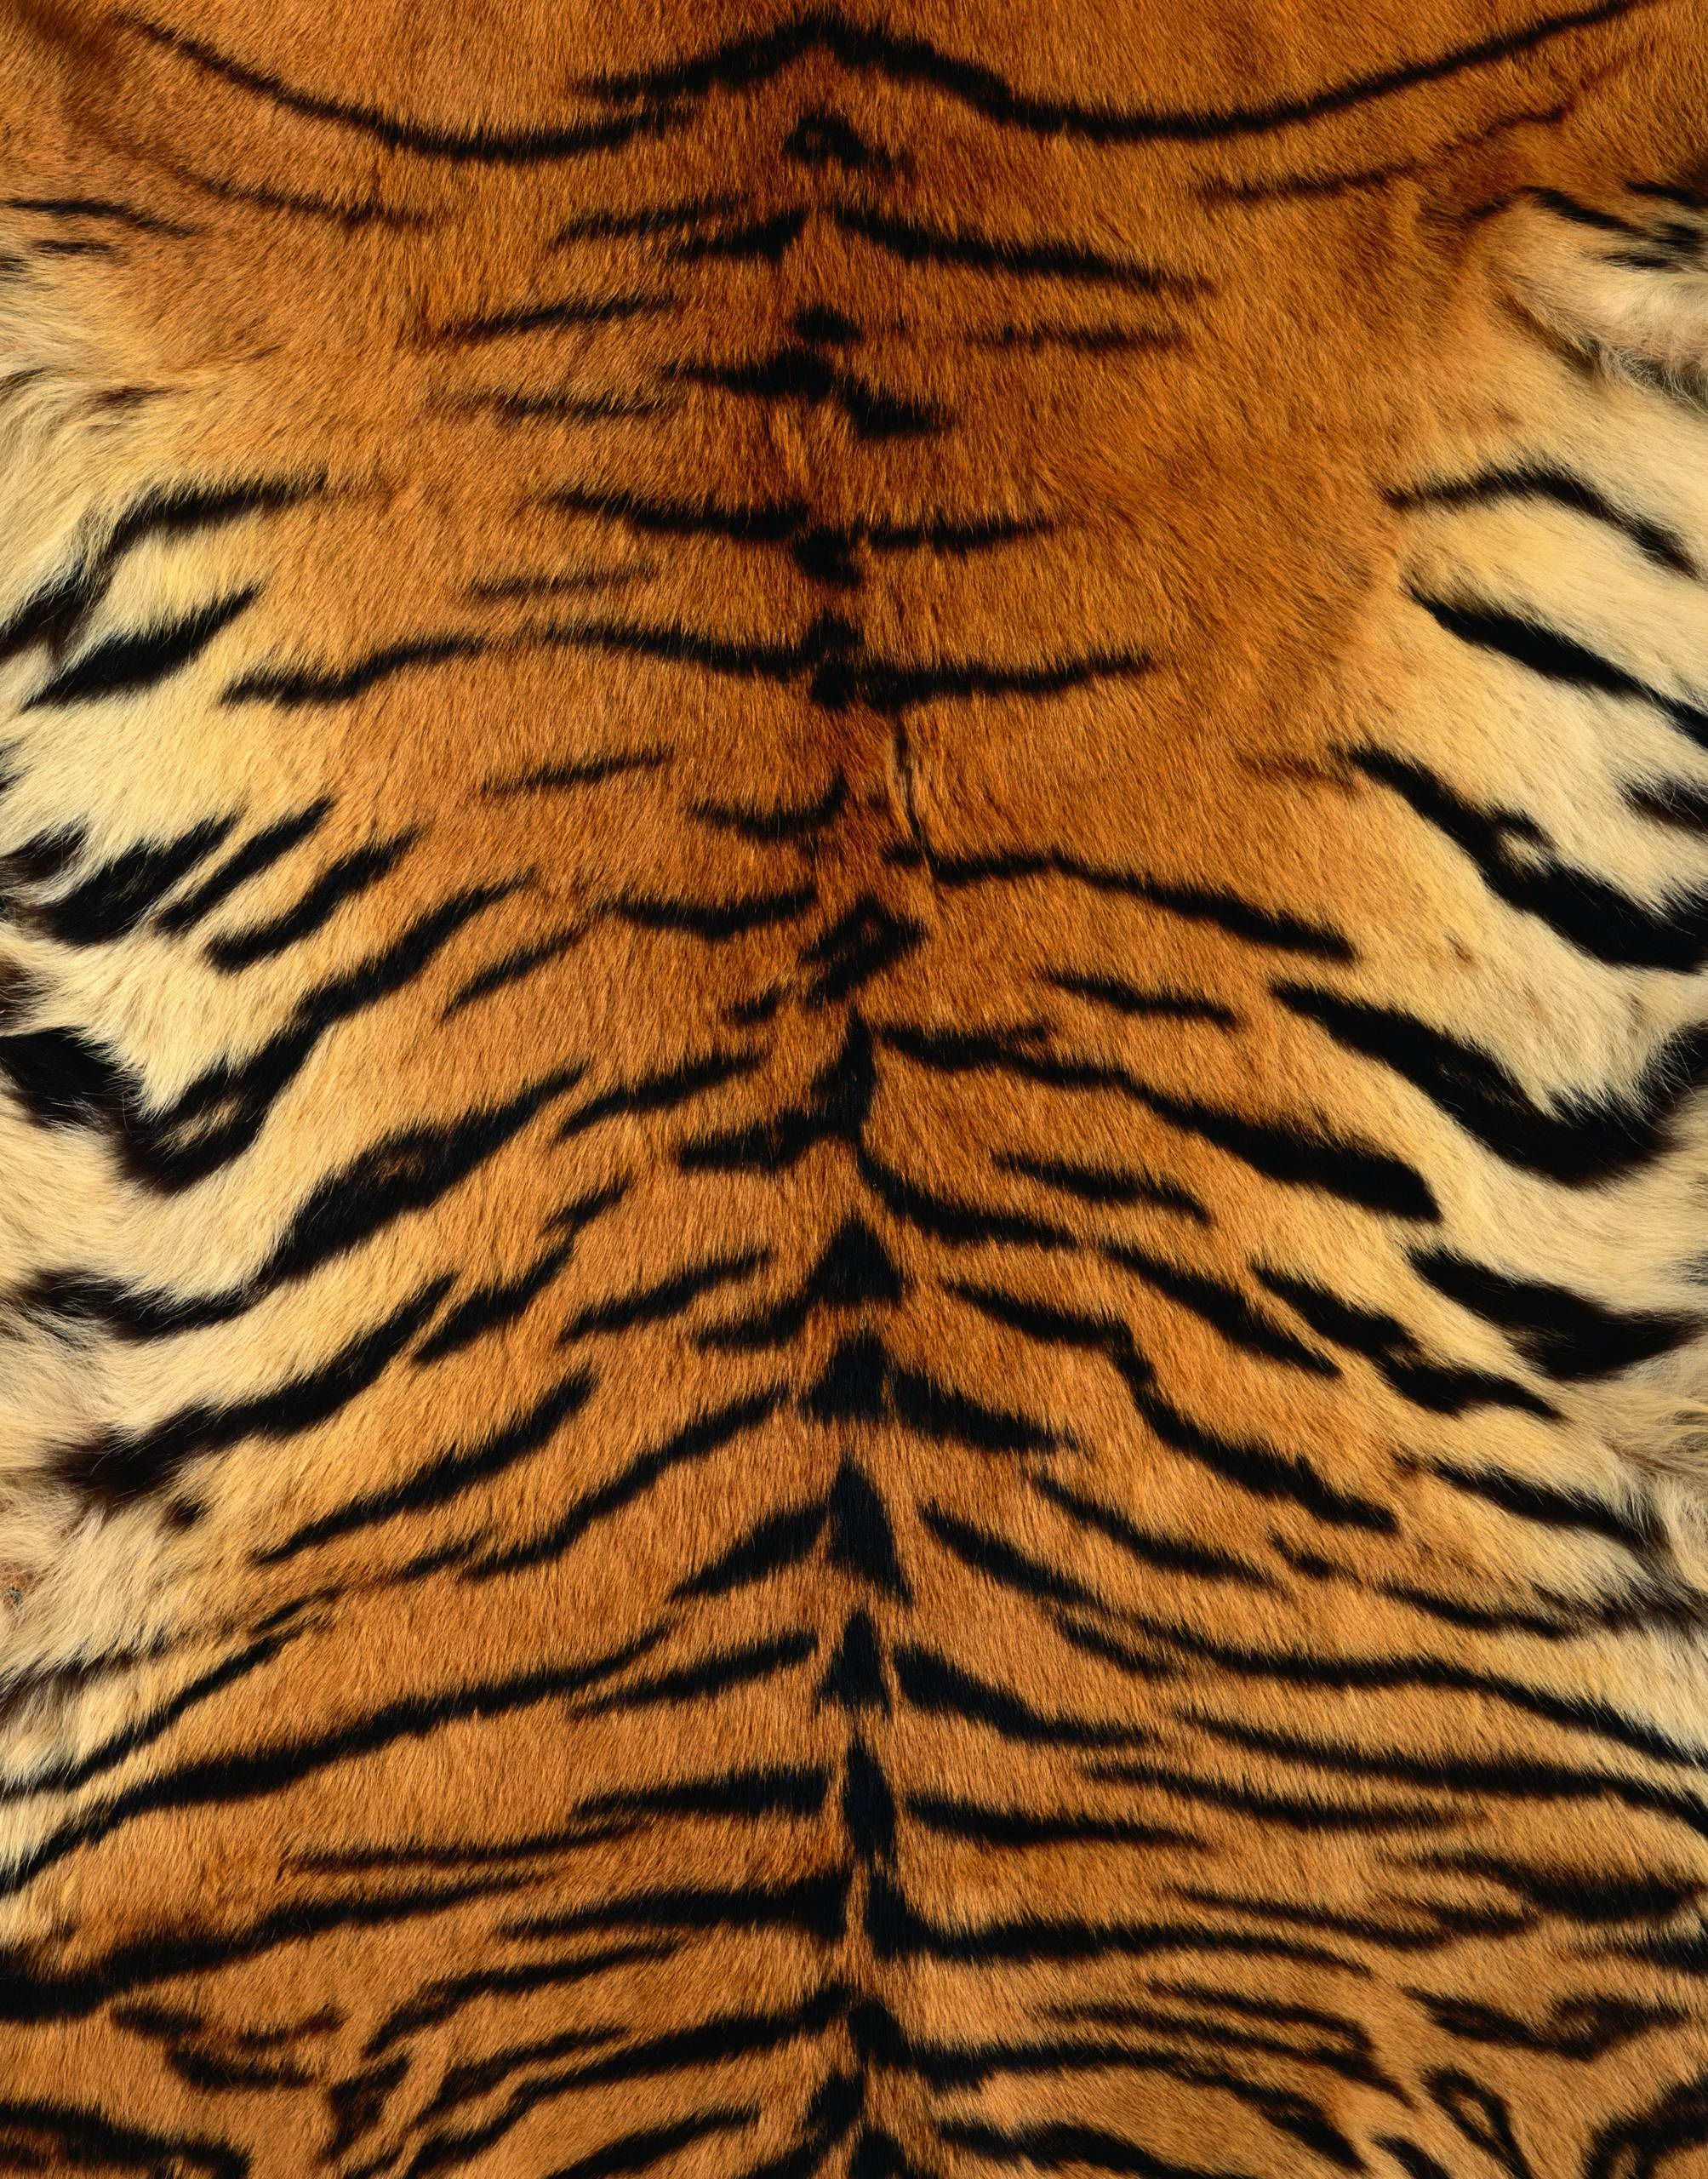 Tiger Skin Google Search Doodle Reference Patterns